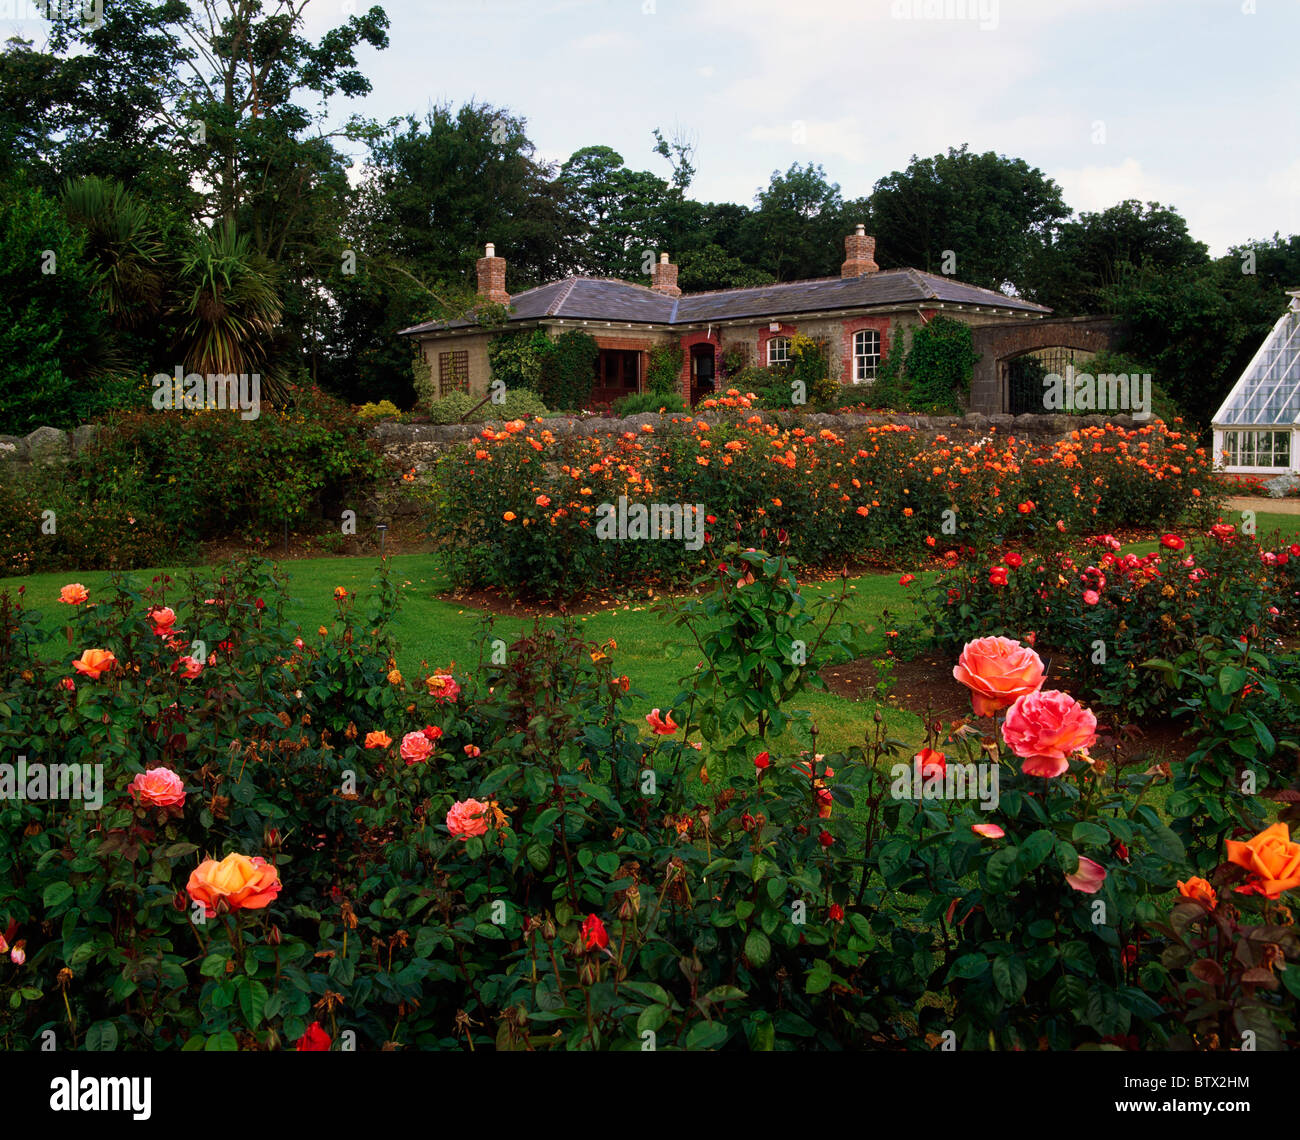 Tea Rooms, Ardgillan Demesne, Balbriggan, Co Dublin, Ireland; Rose Garden And Tea Rooms During Summer - Stock Image